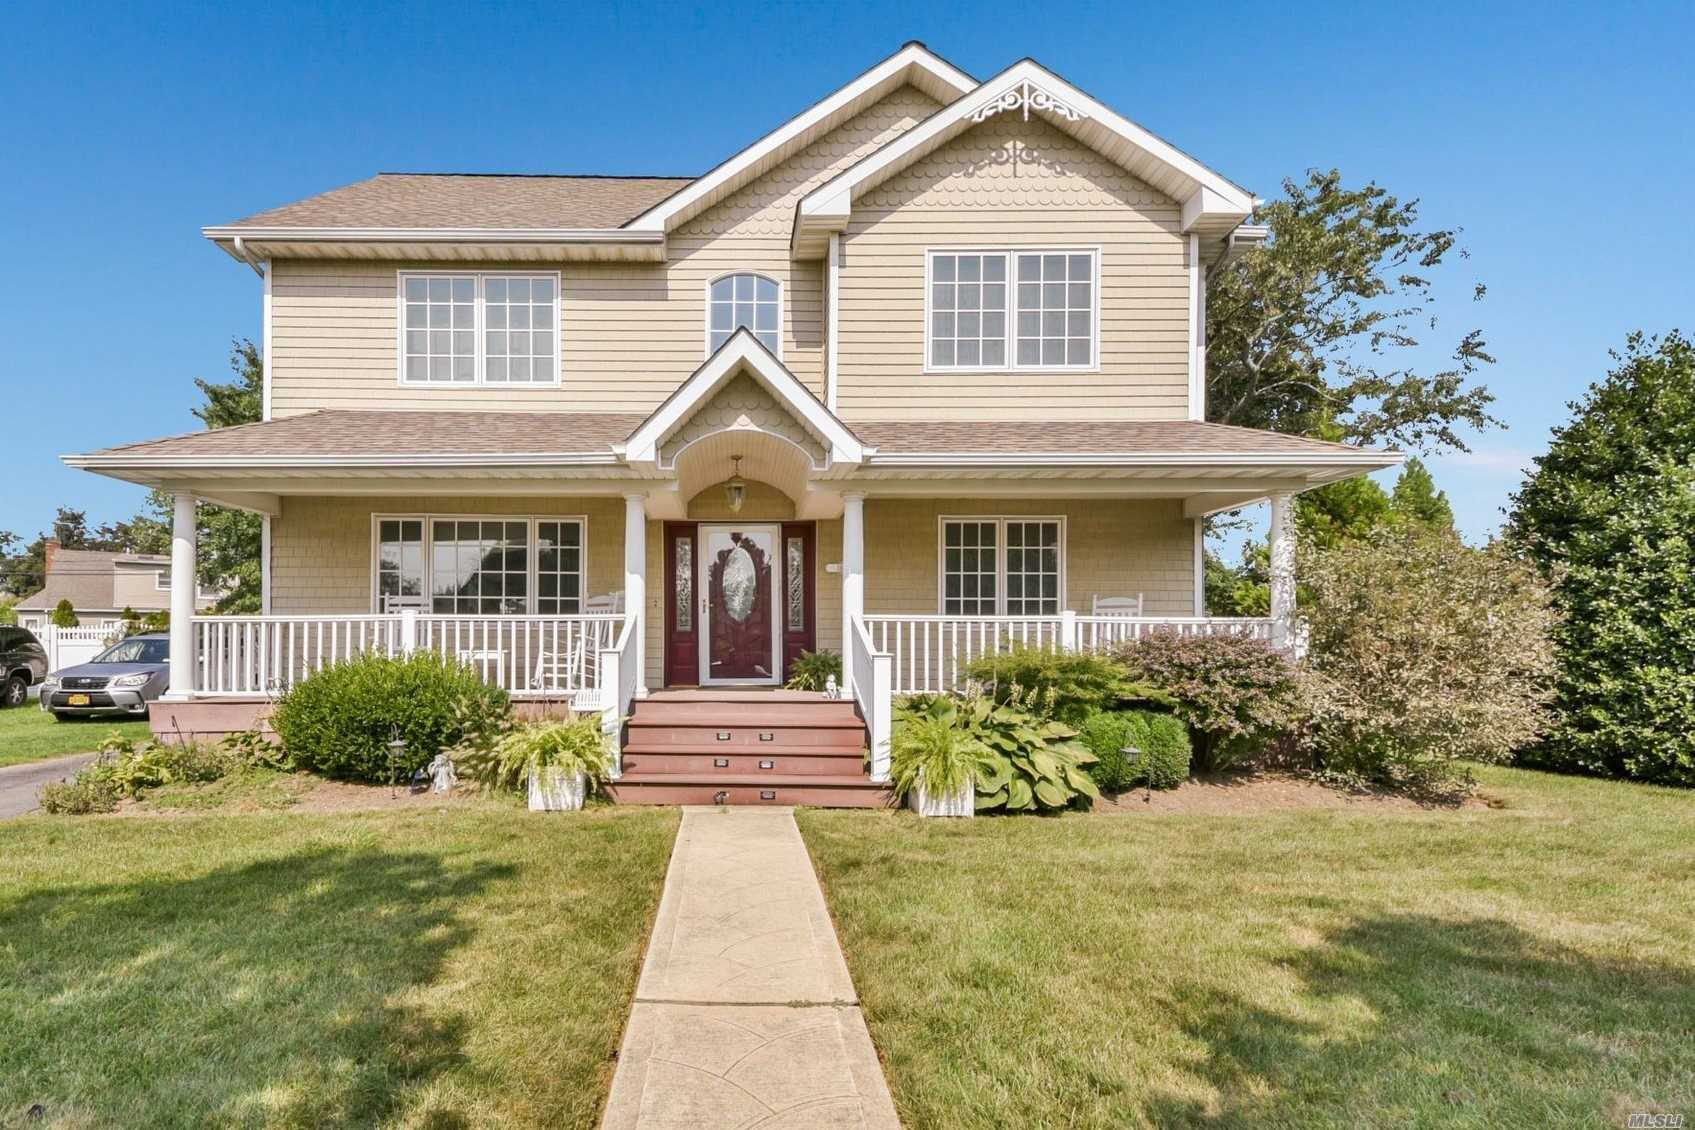 Custom Colonial W/ Resort Backyard. 4 Br, 2 Fbth In The Heart Of Wantagh Woods. Granite Chefs Eat In Kitchen, Fdr, Vaulted Family Room Loaded W/ Natural Light. Semi Built In Pool. Oversized Property, Close To Town And Train, School District #23